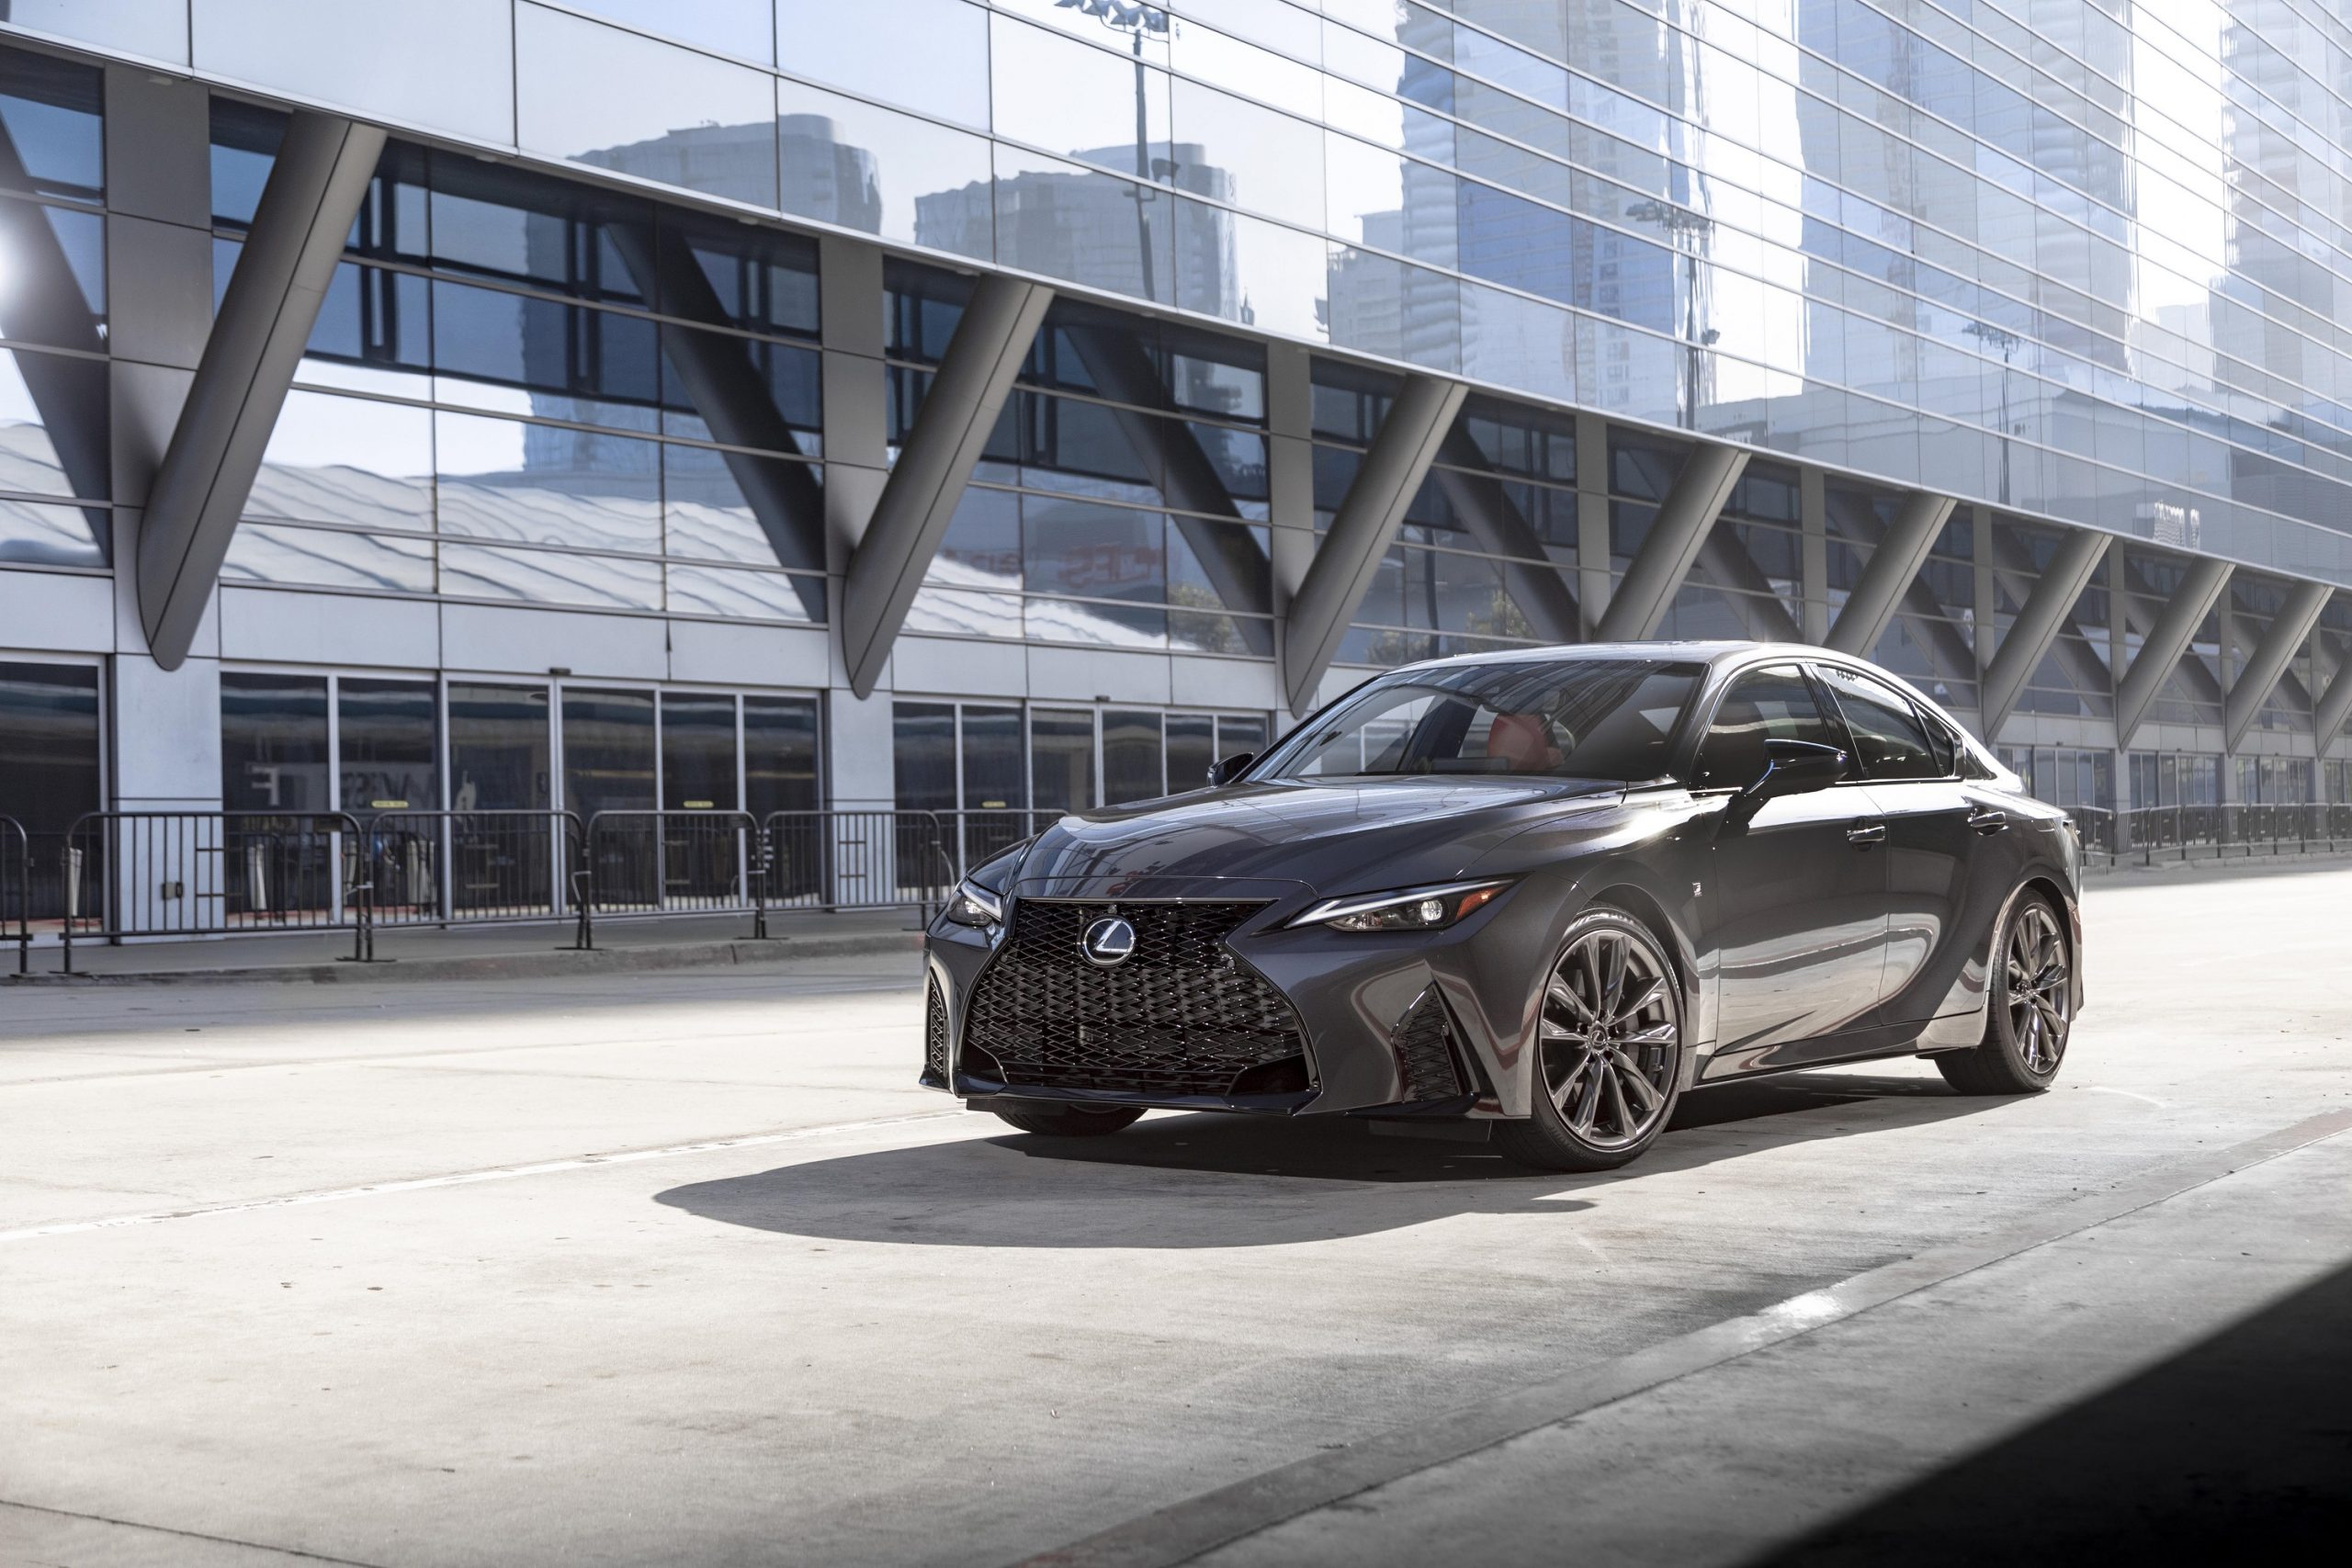 A grey 2022 Lexus IS sedan shot from the front 3/4 on an empty city street